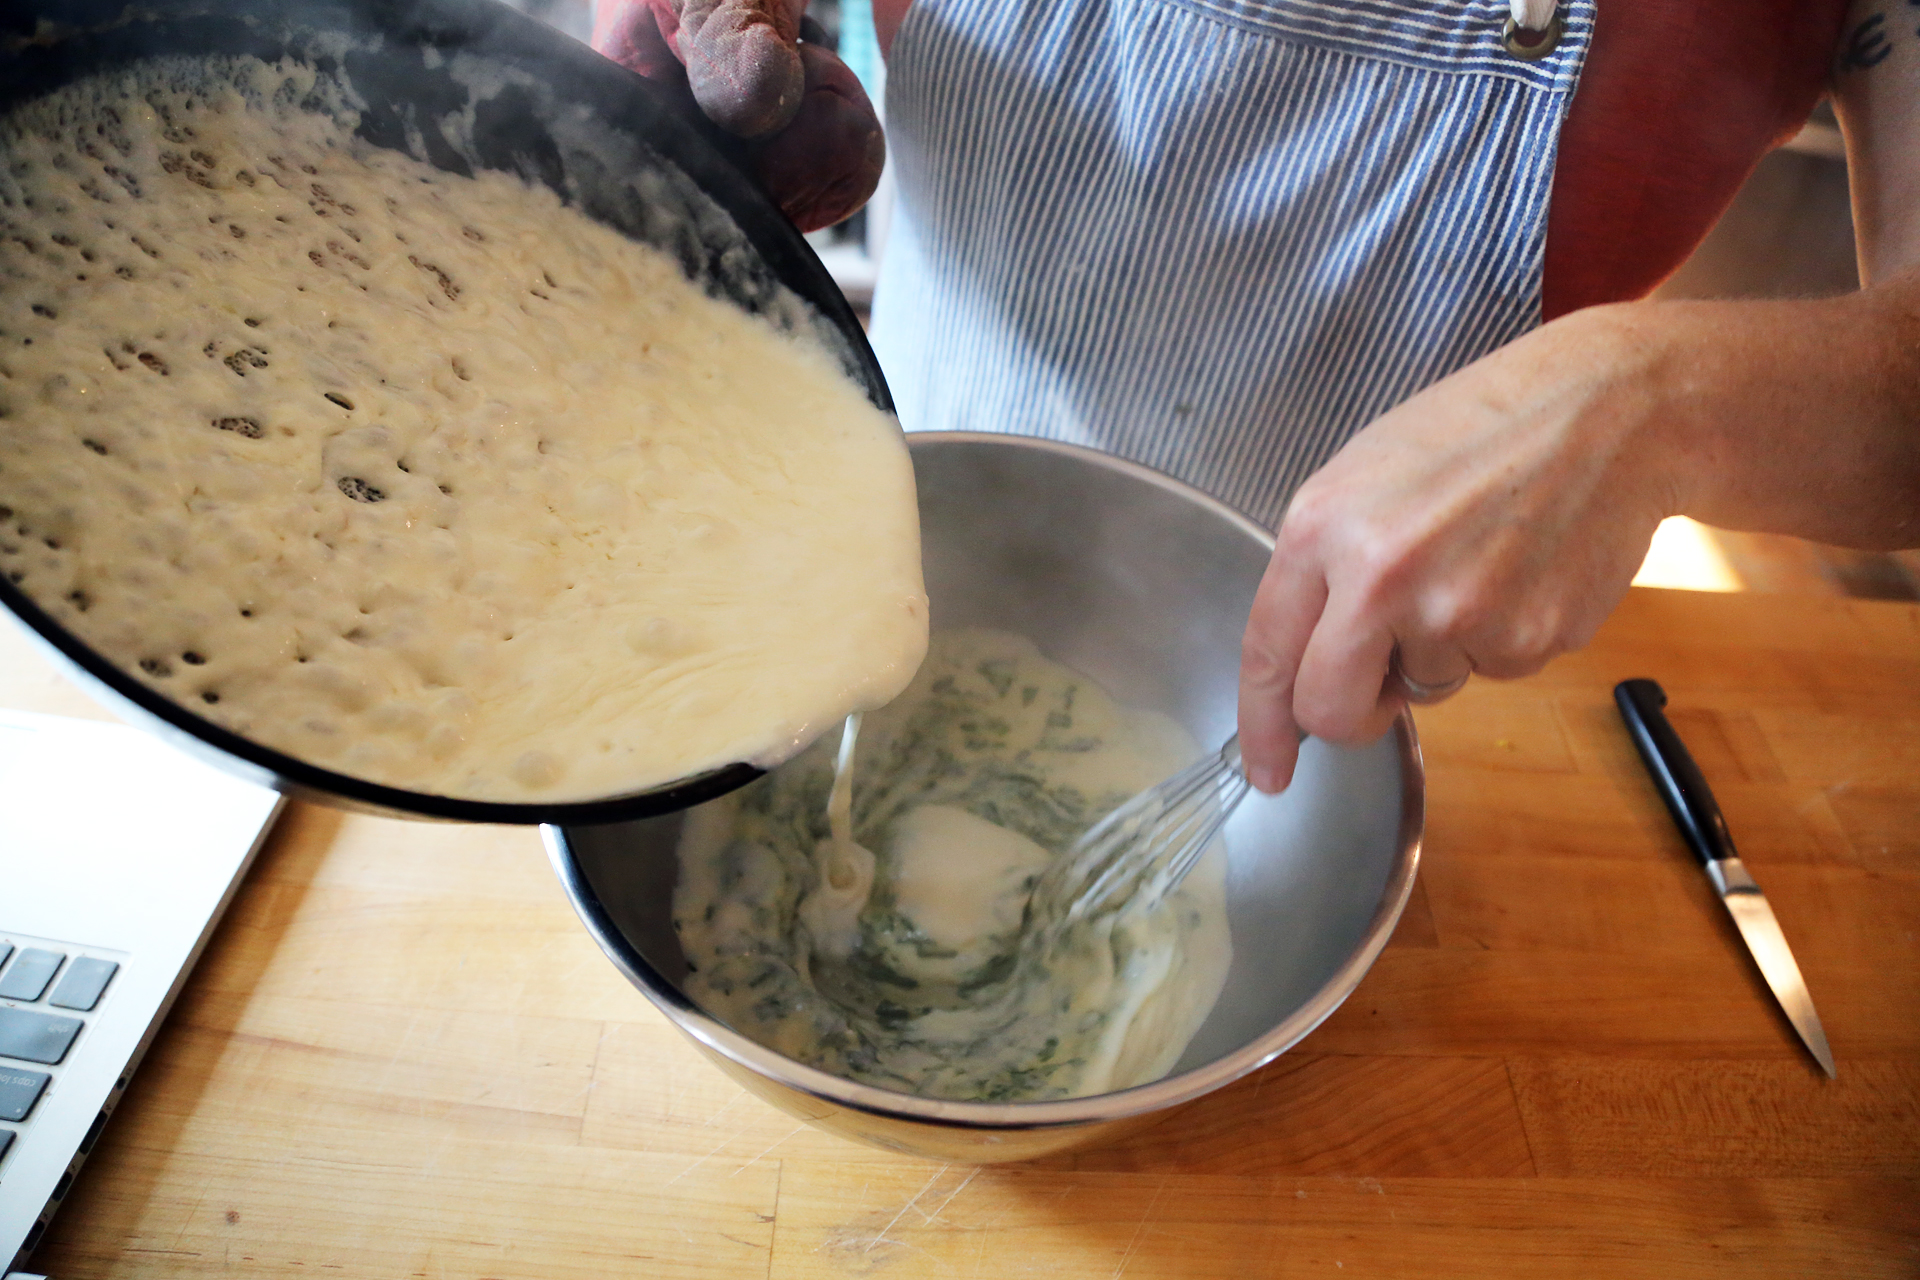 In a heatproof mixing bowl, whisk together the egg yolks and spinach. Slowly pour the sauce into the yolks while whisking constantly.